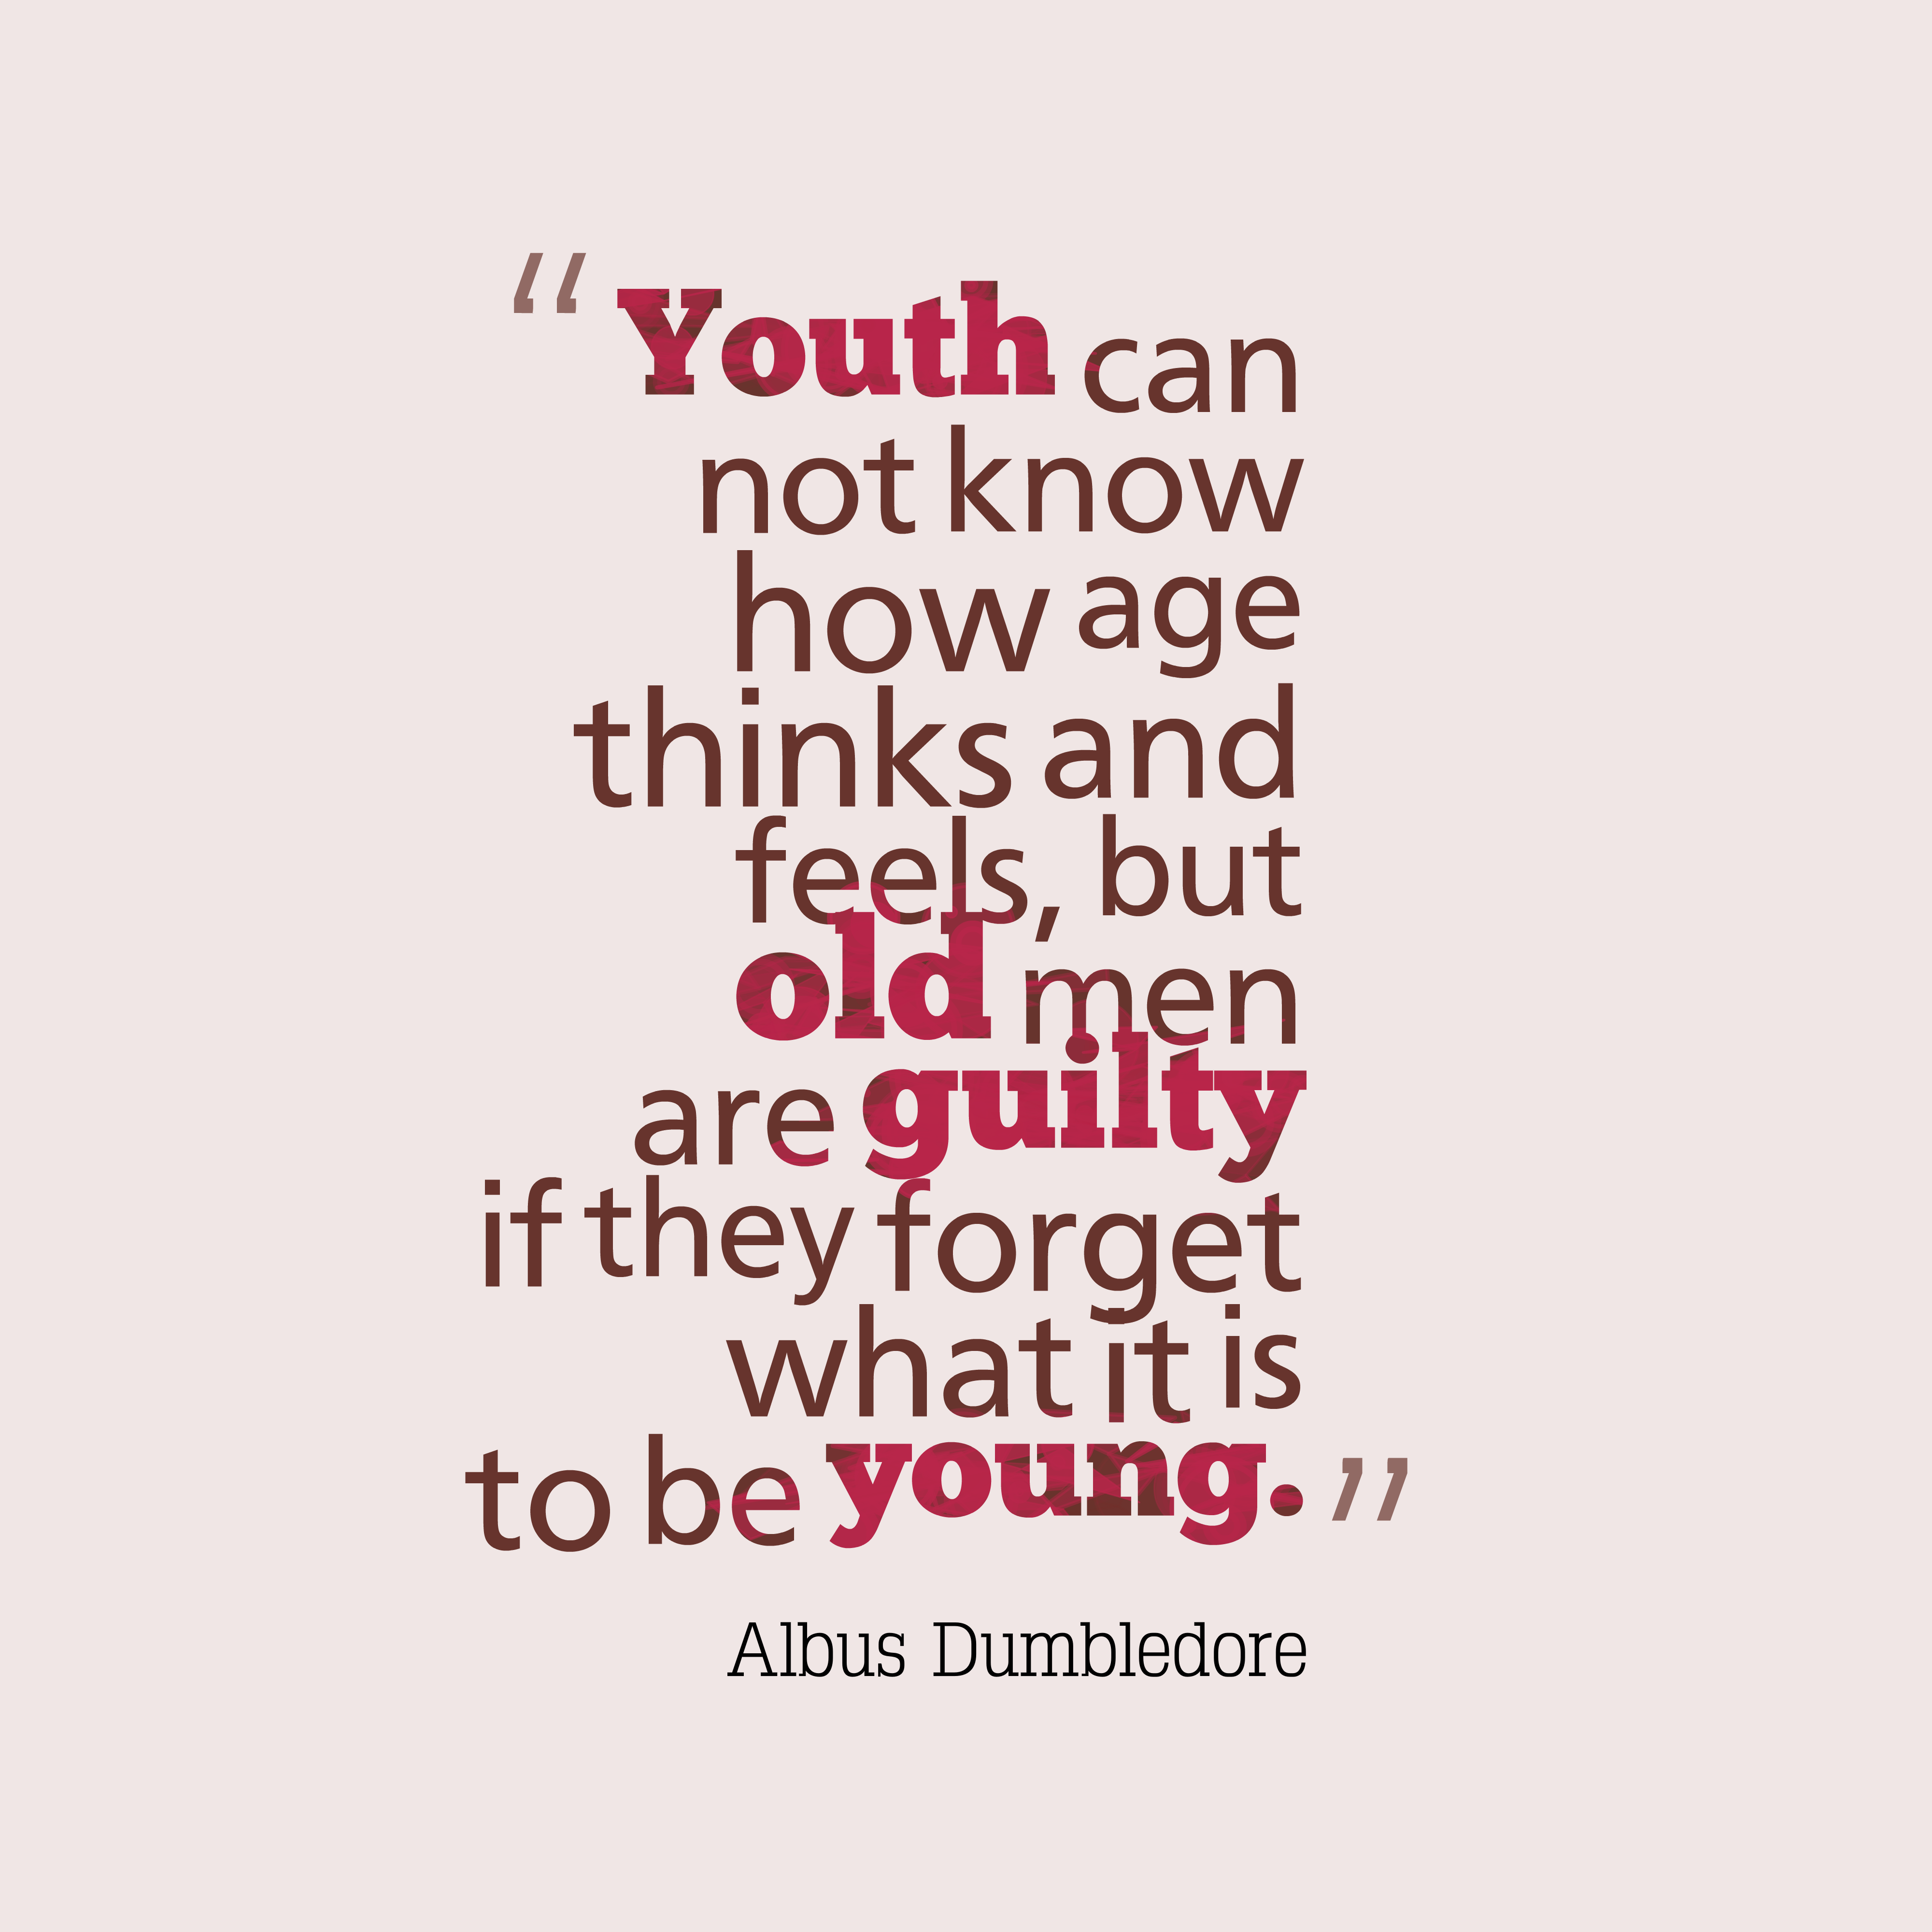 Quotes image of Youth can not know how age thinks and feels, but old men are guilty if they forget what it is to be young.